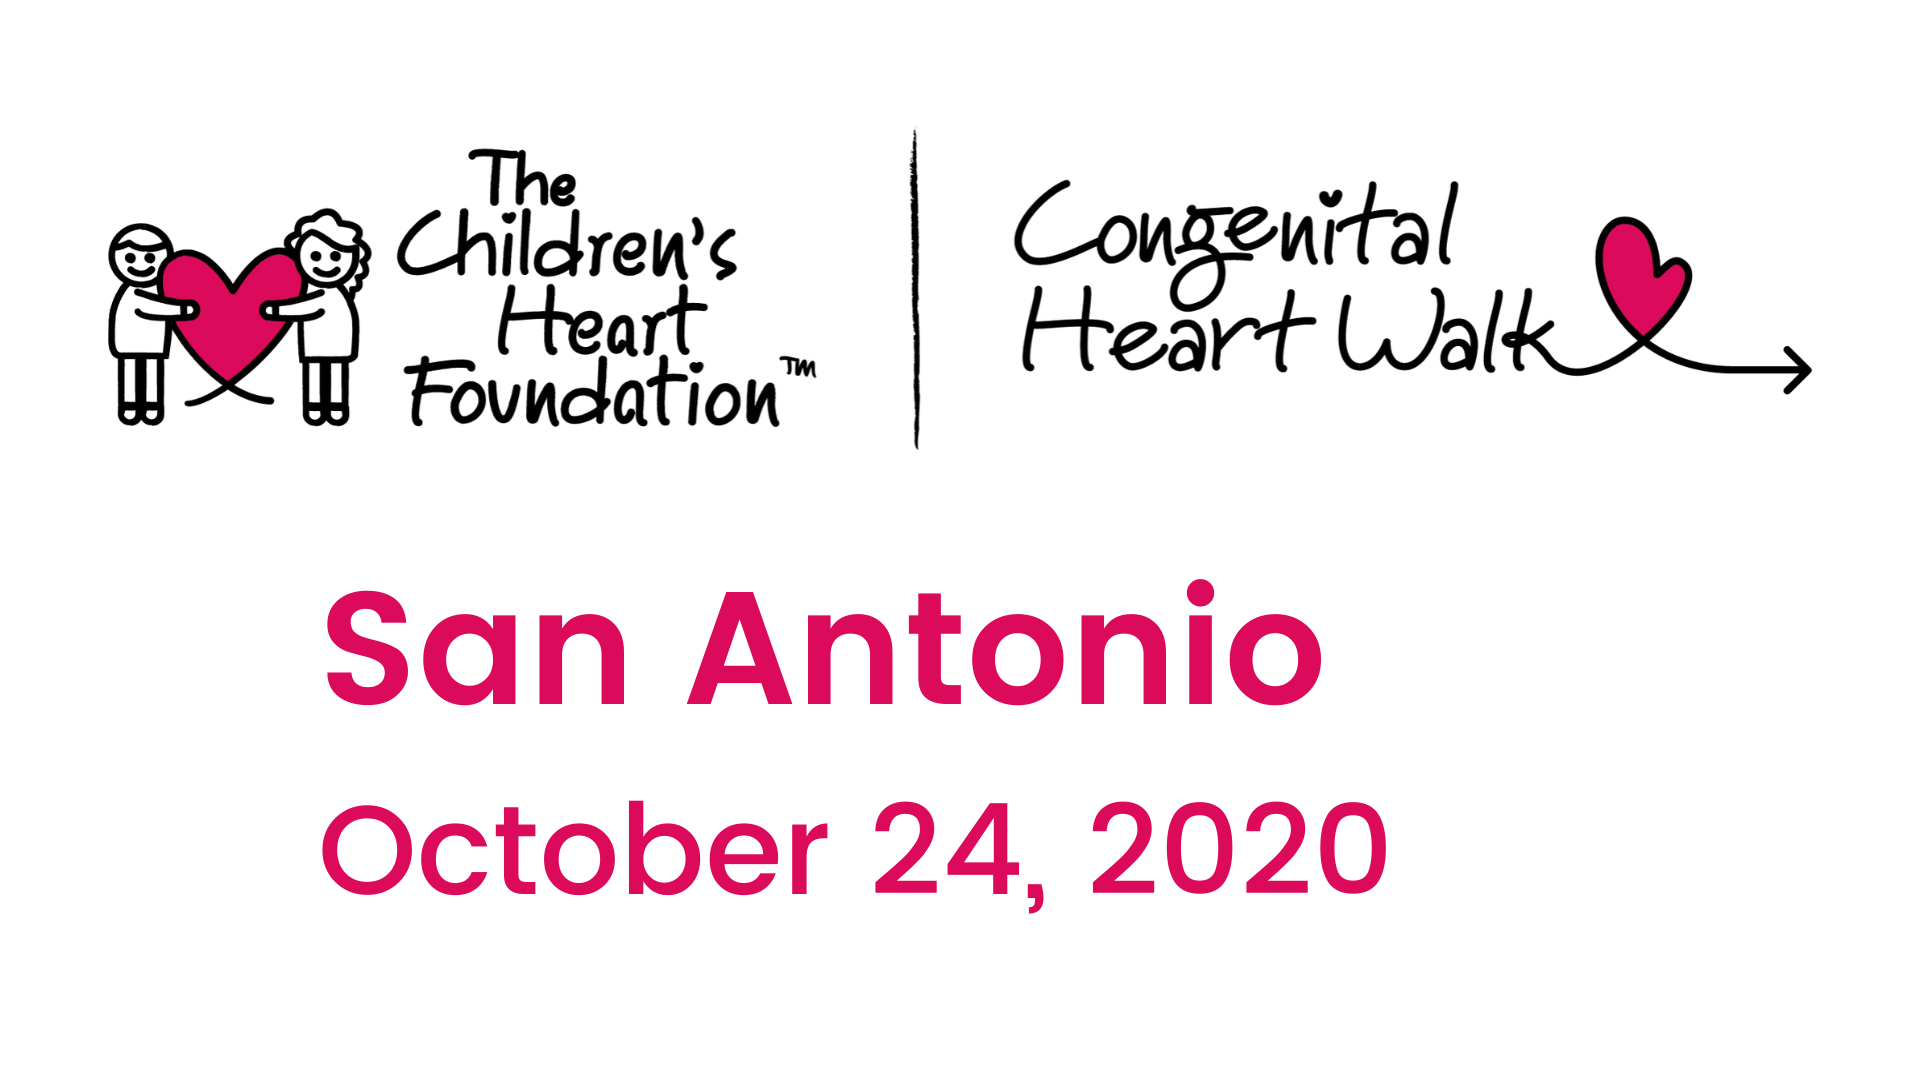 San Antonio Congenital Heart Walk (Texas)